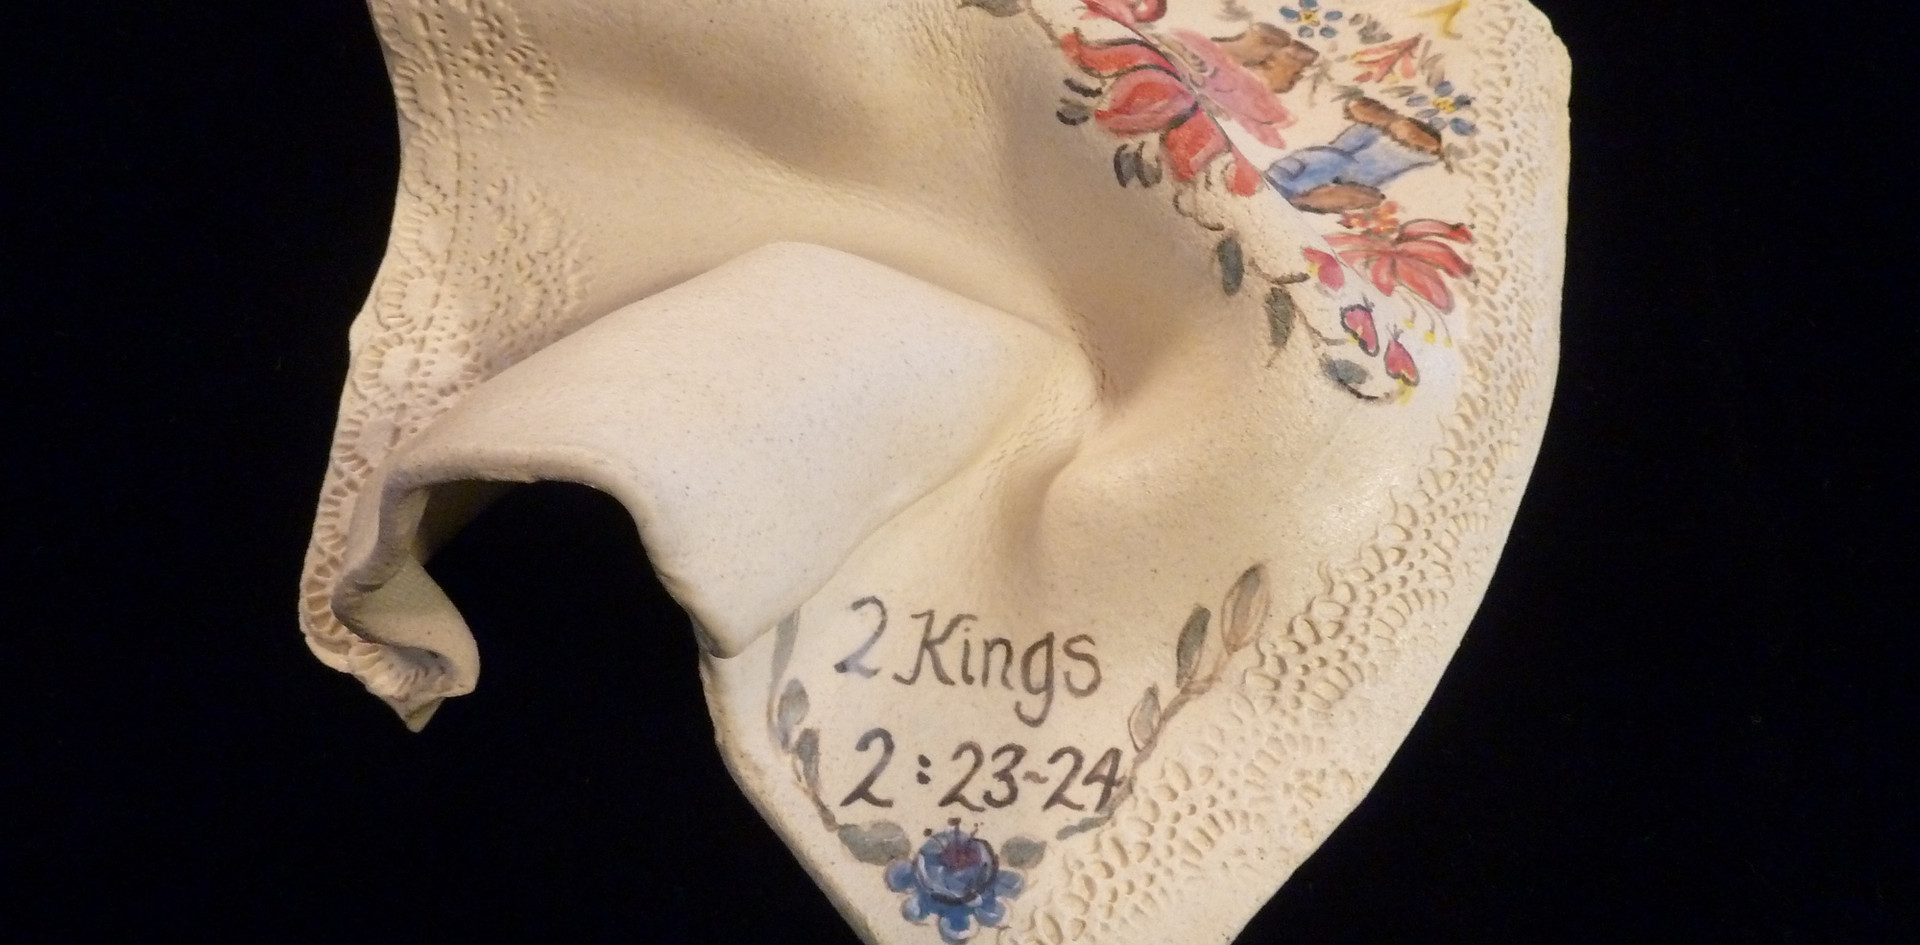 2 King 2:23-24 (Side View)